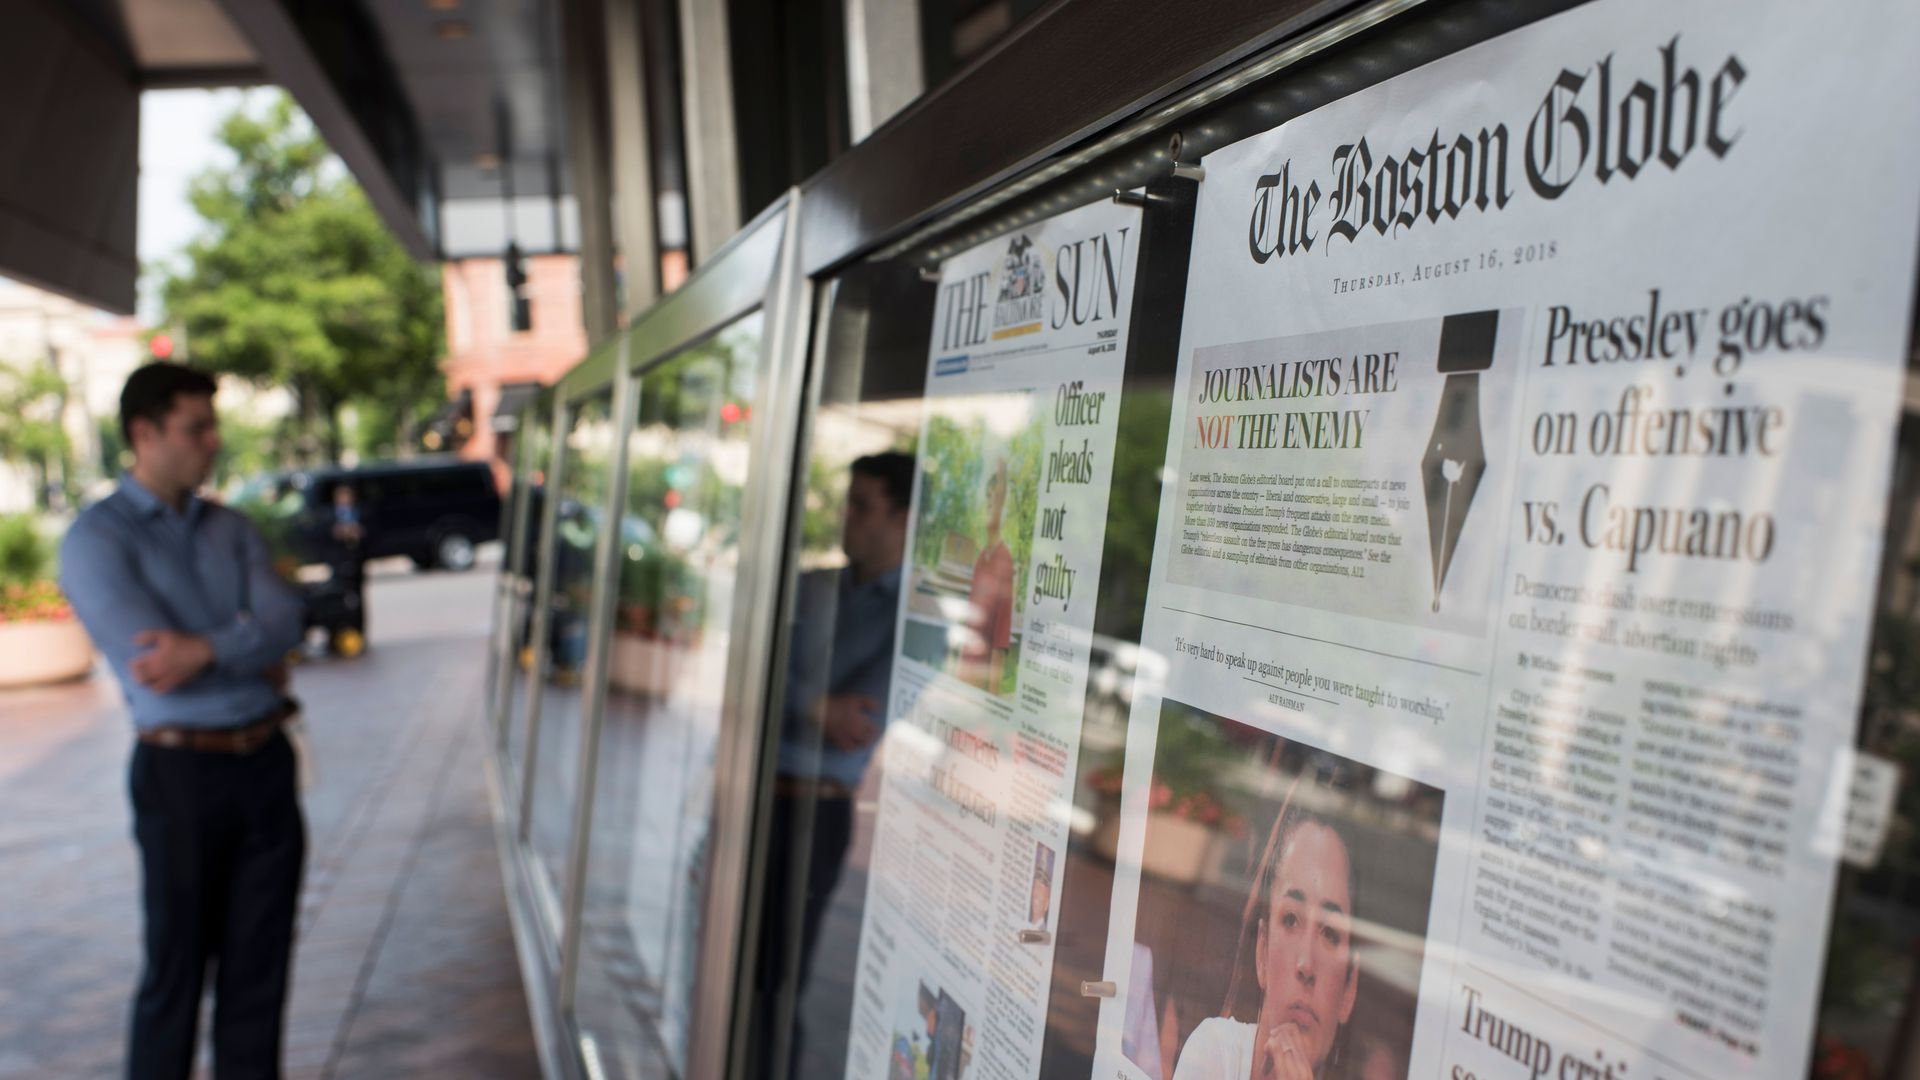 The Boston Globe's front page at the Newseum